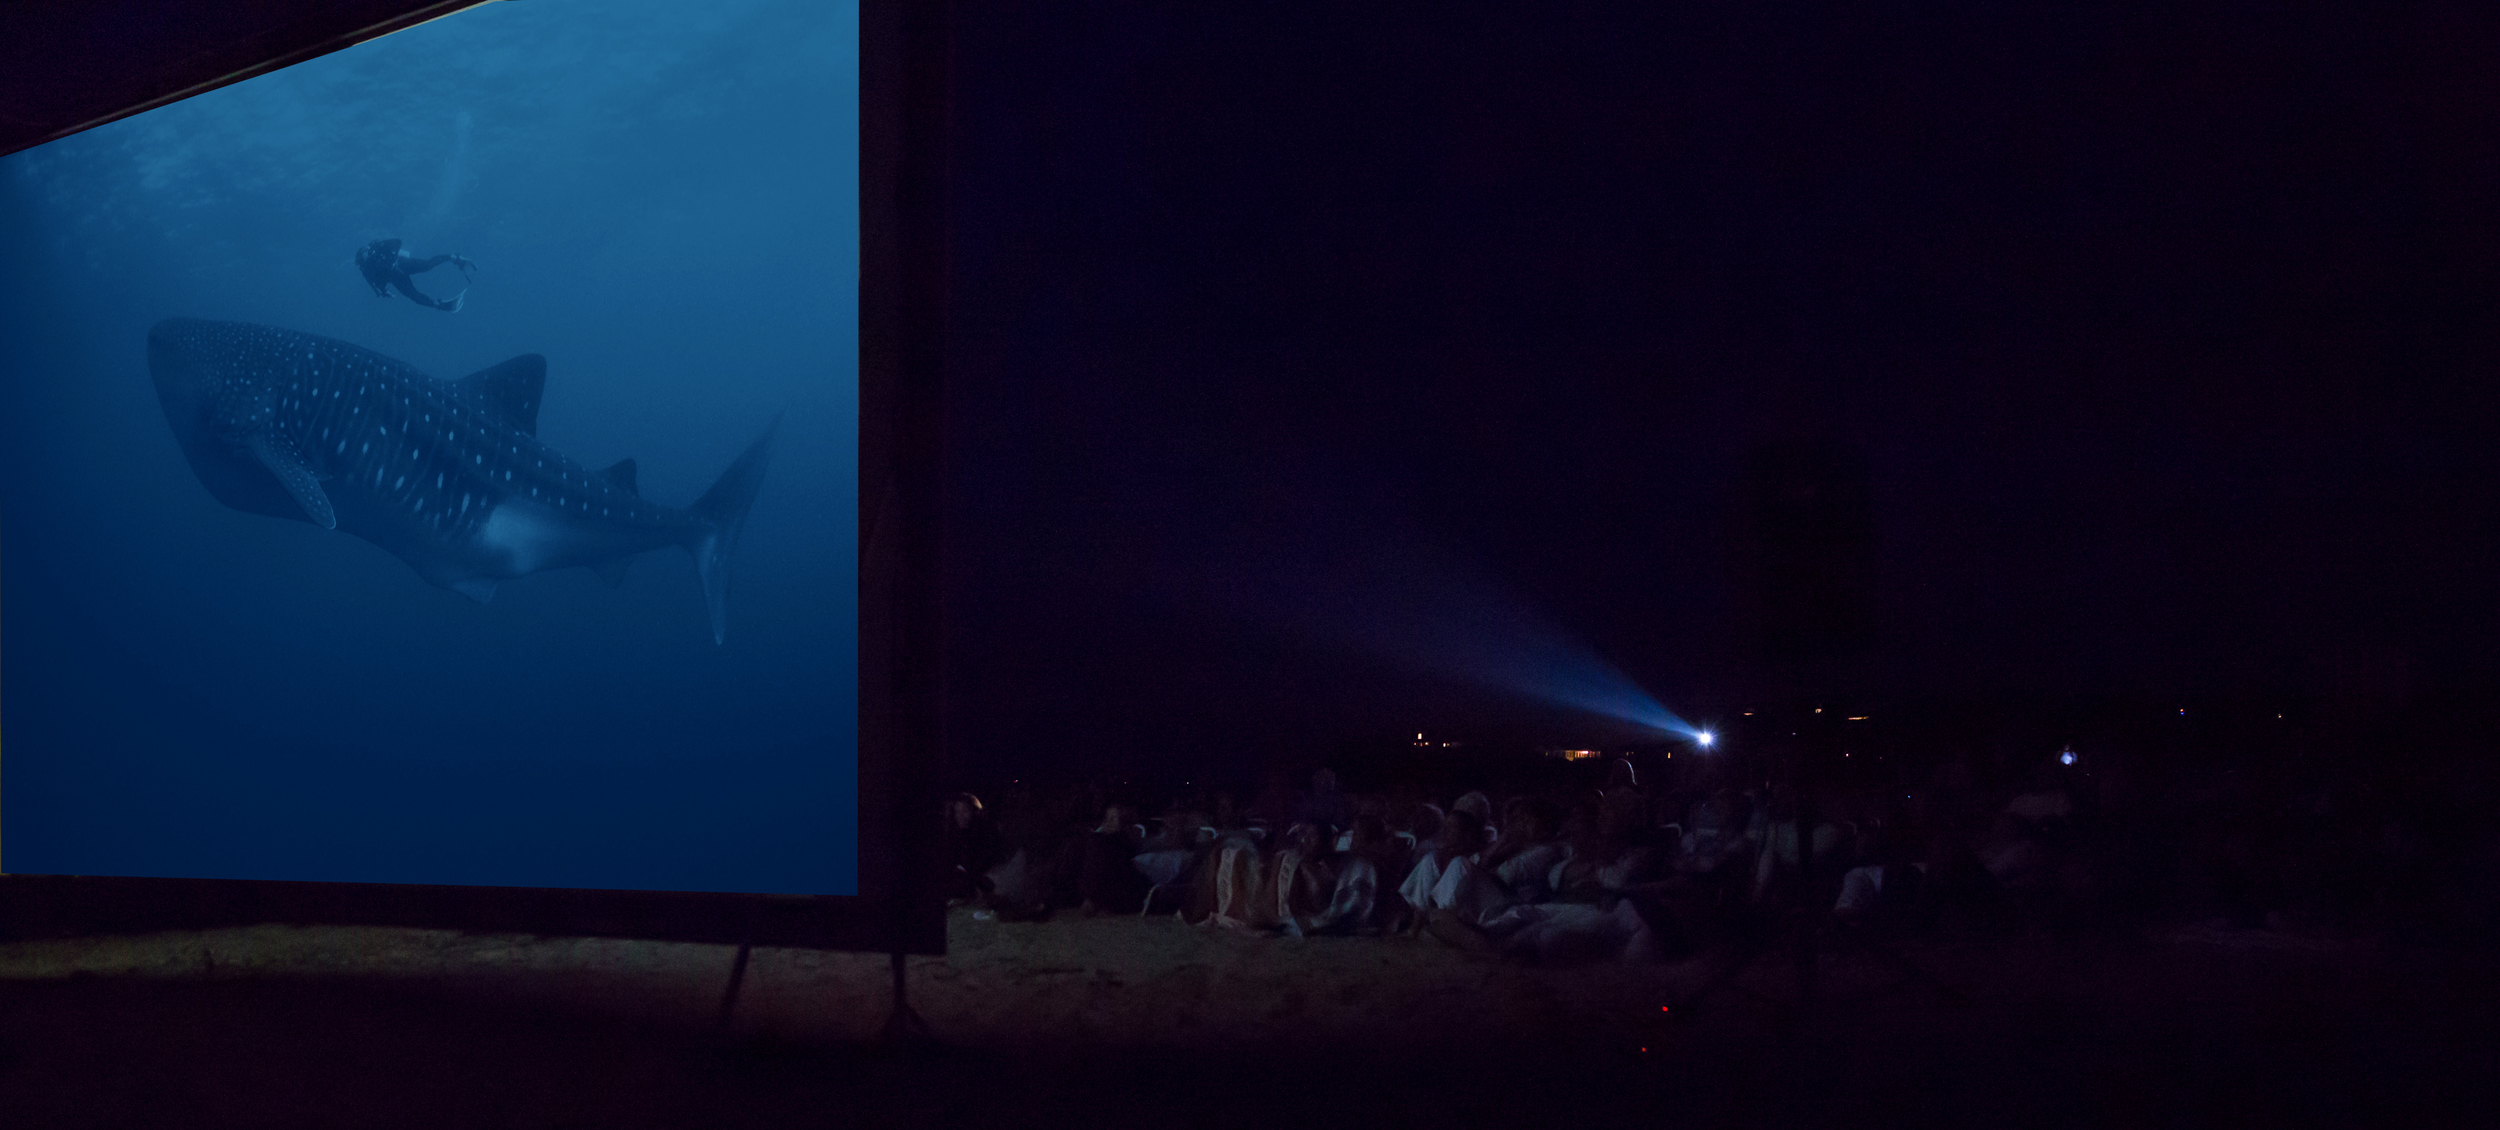 The free outdoor screening of RACING EXTINCTION on August 18, 2015,with director Louie Psihoyos at Menemsha Beach in Chilmark.Photo by Maria Thibodeau.